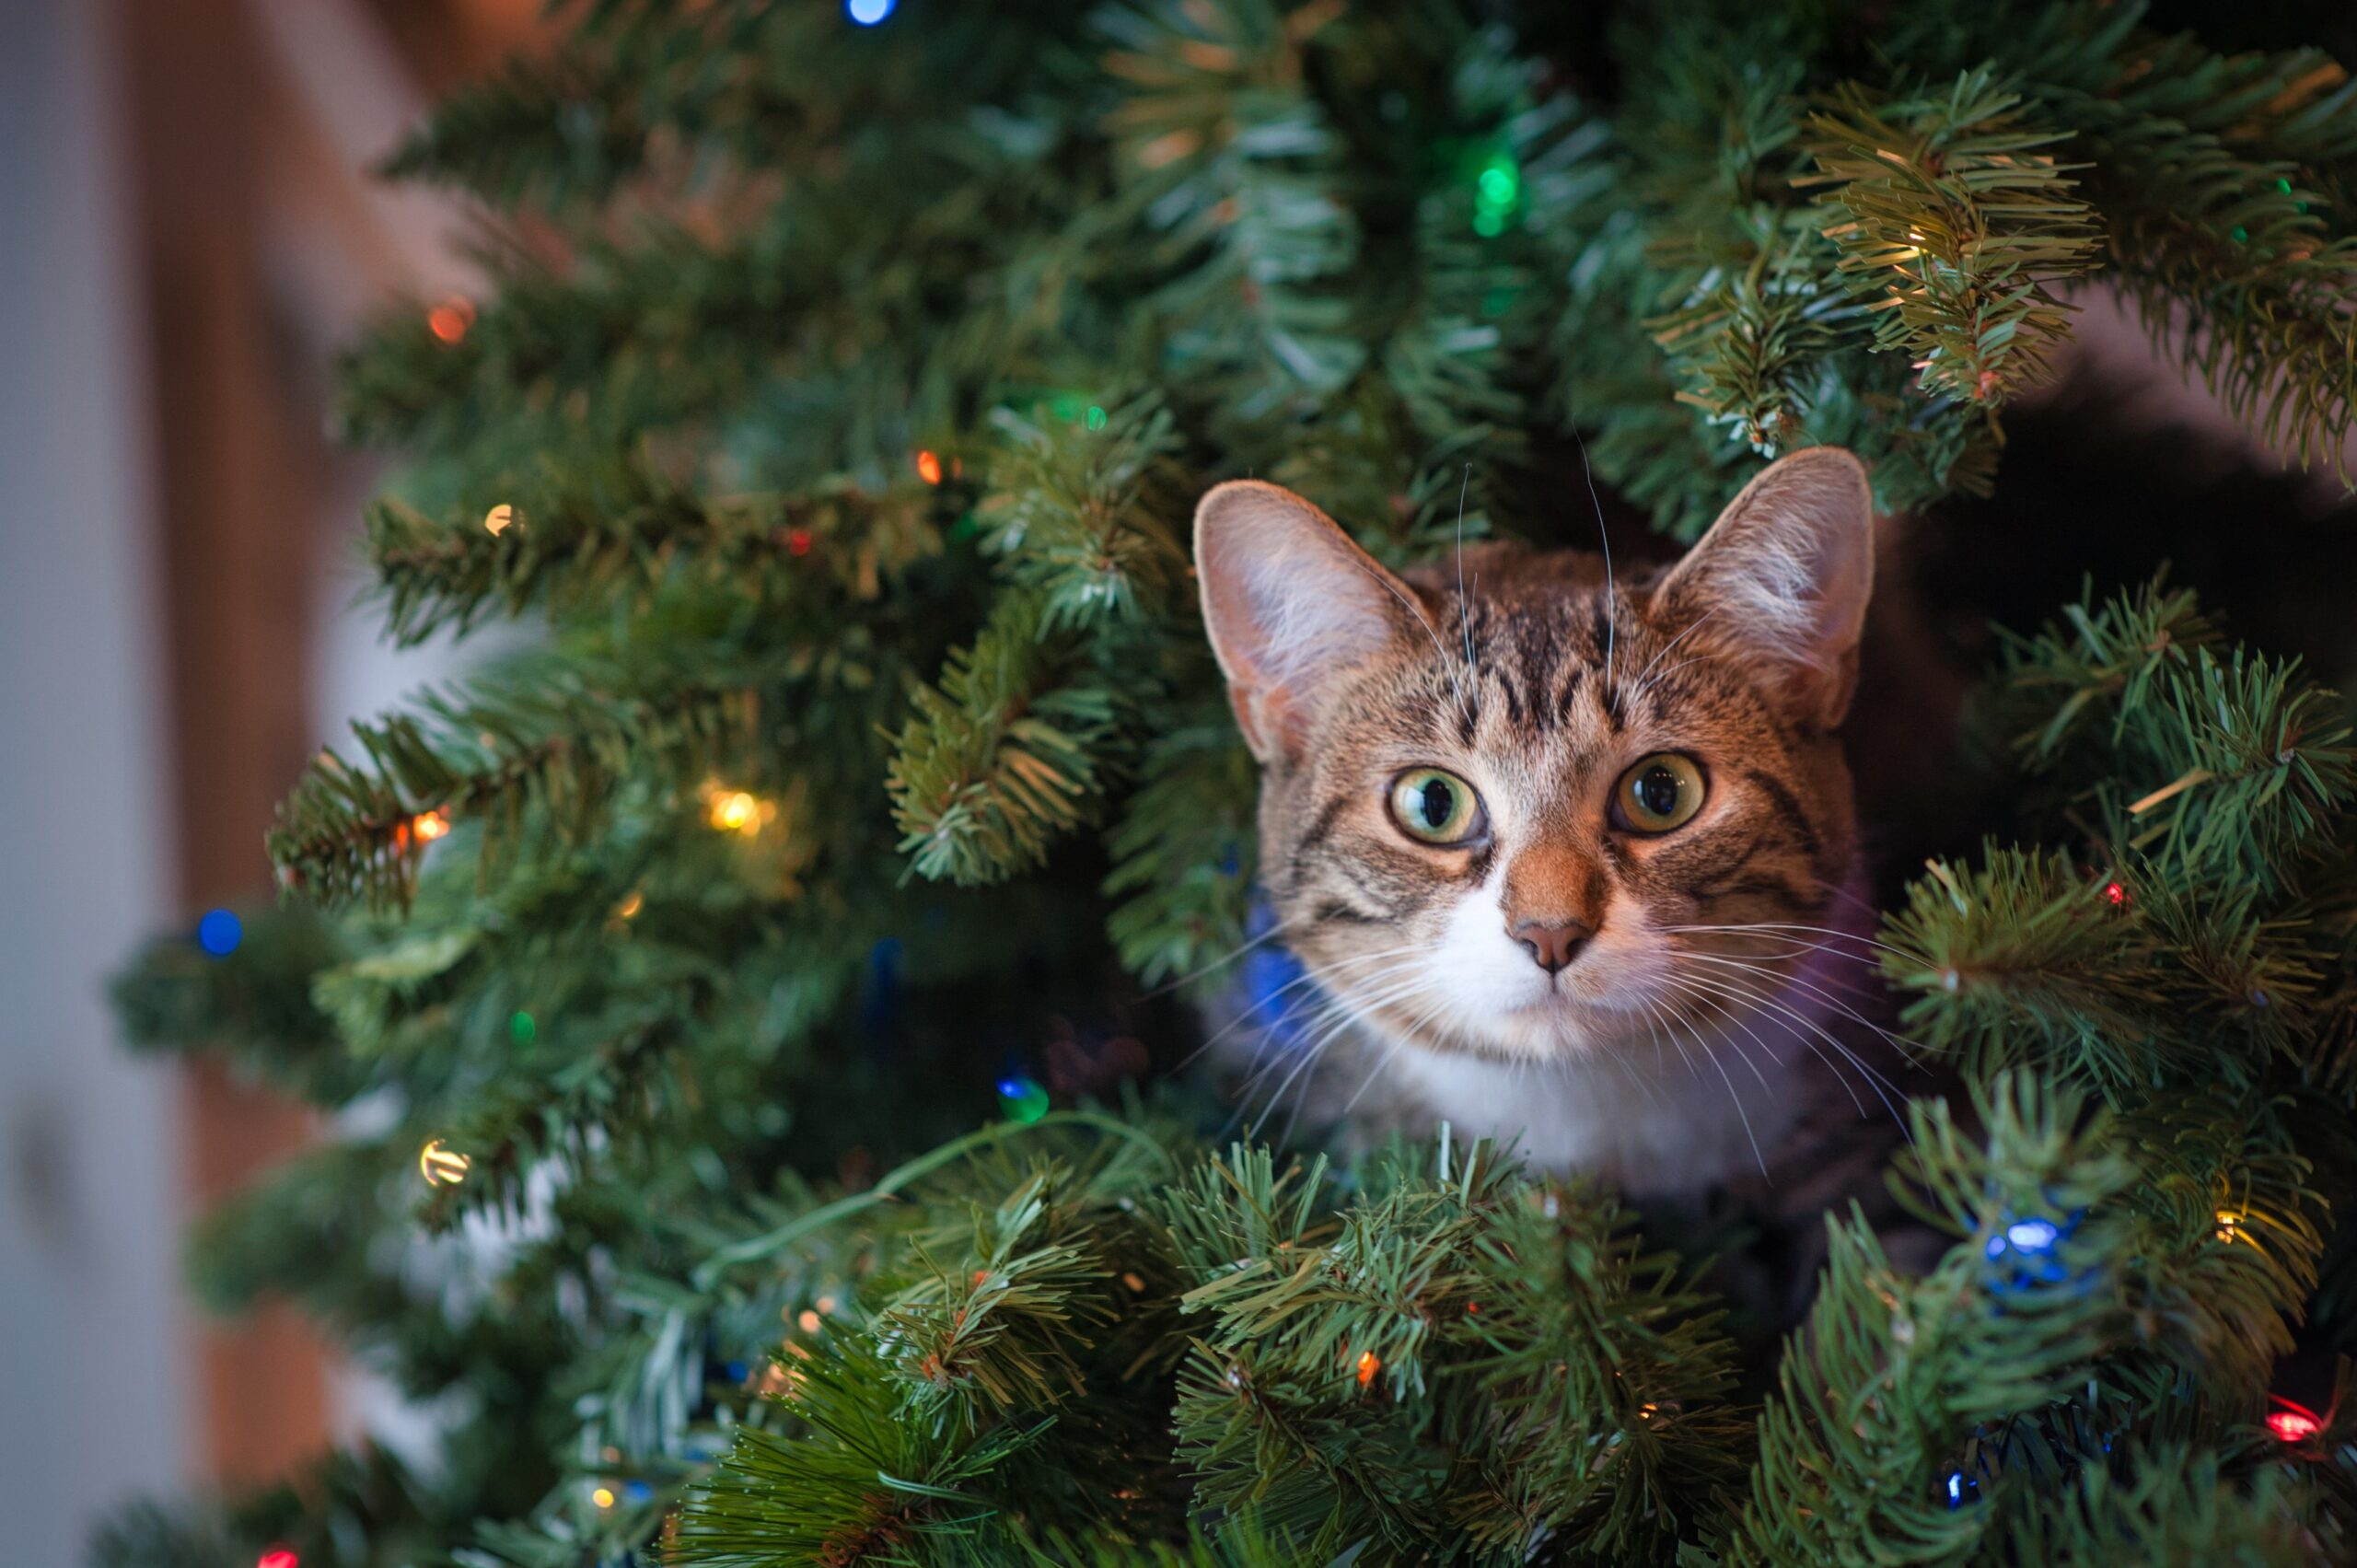 A cat pokes its head out of Christmas tree with a surprised look on its face